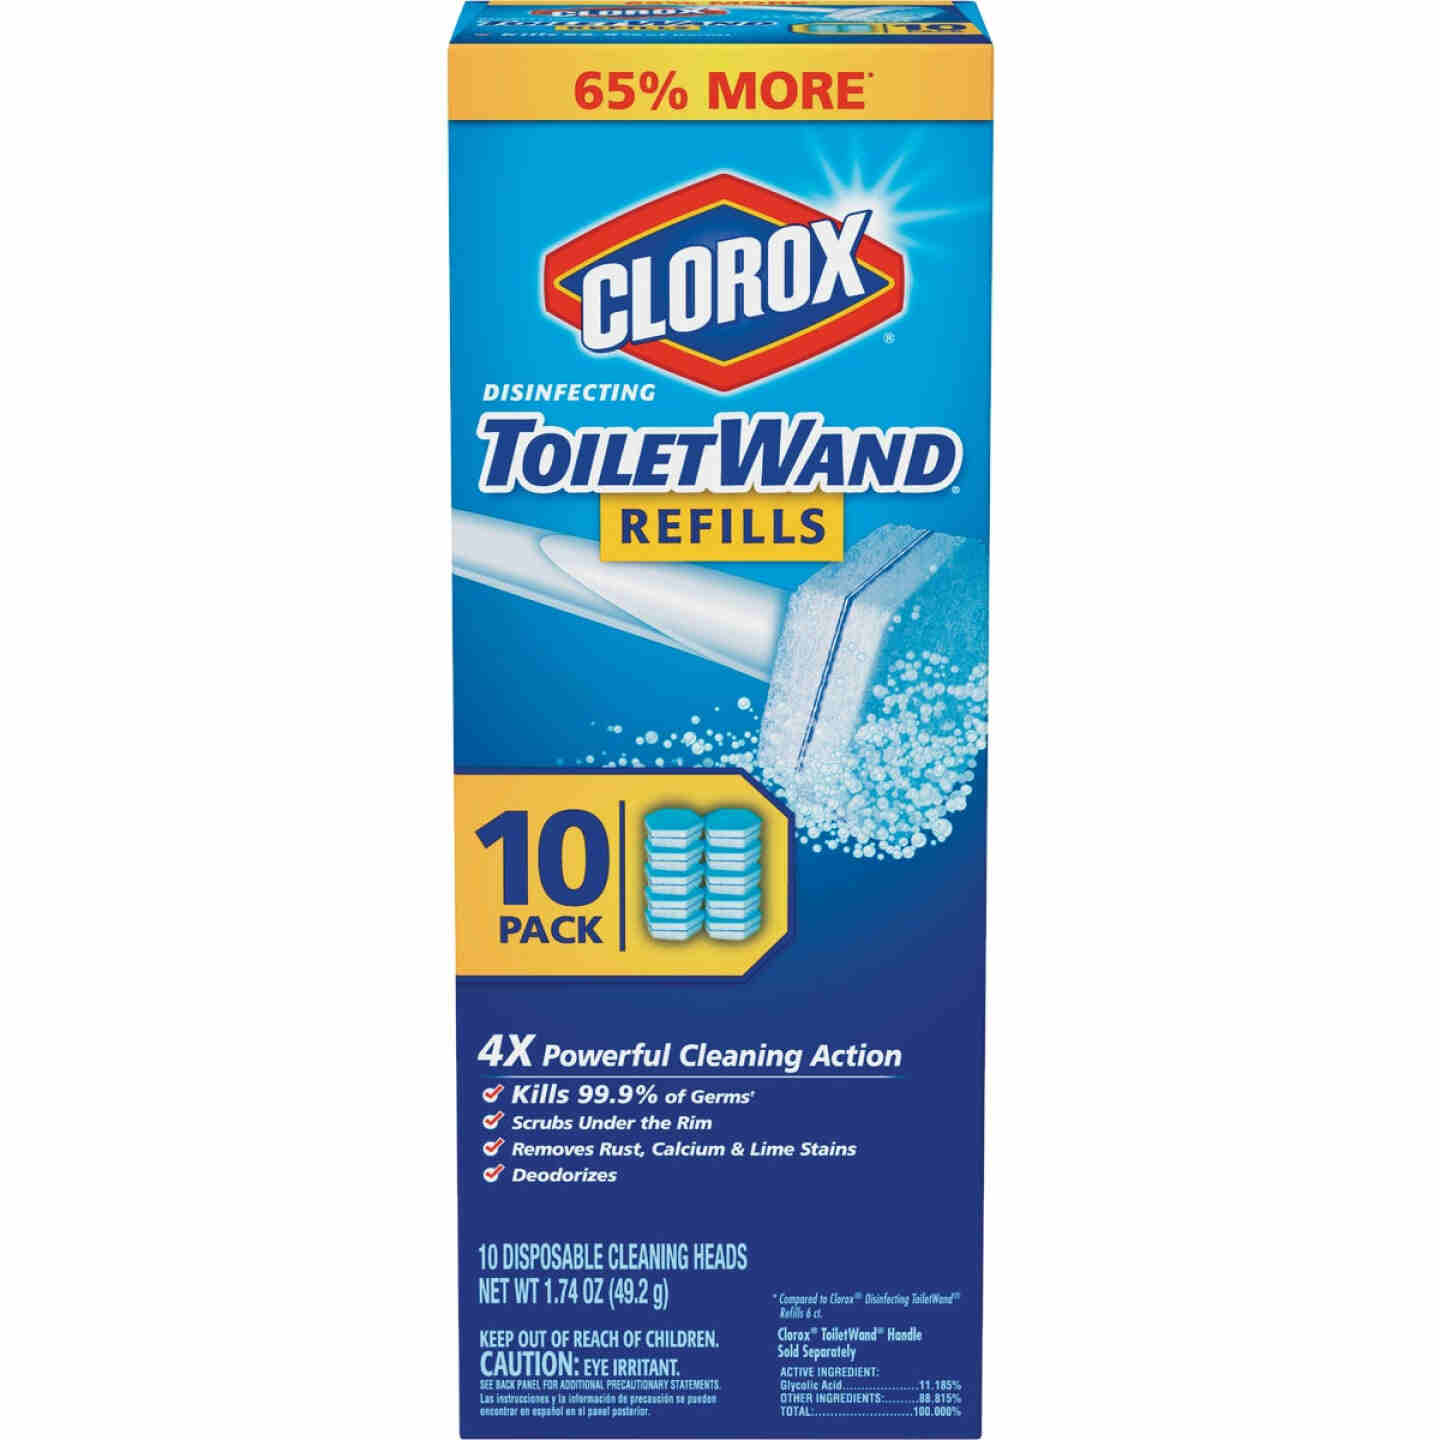 Clorox ToiletWand Refill (10-Count) Image 1